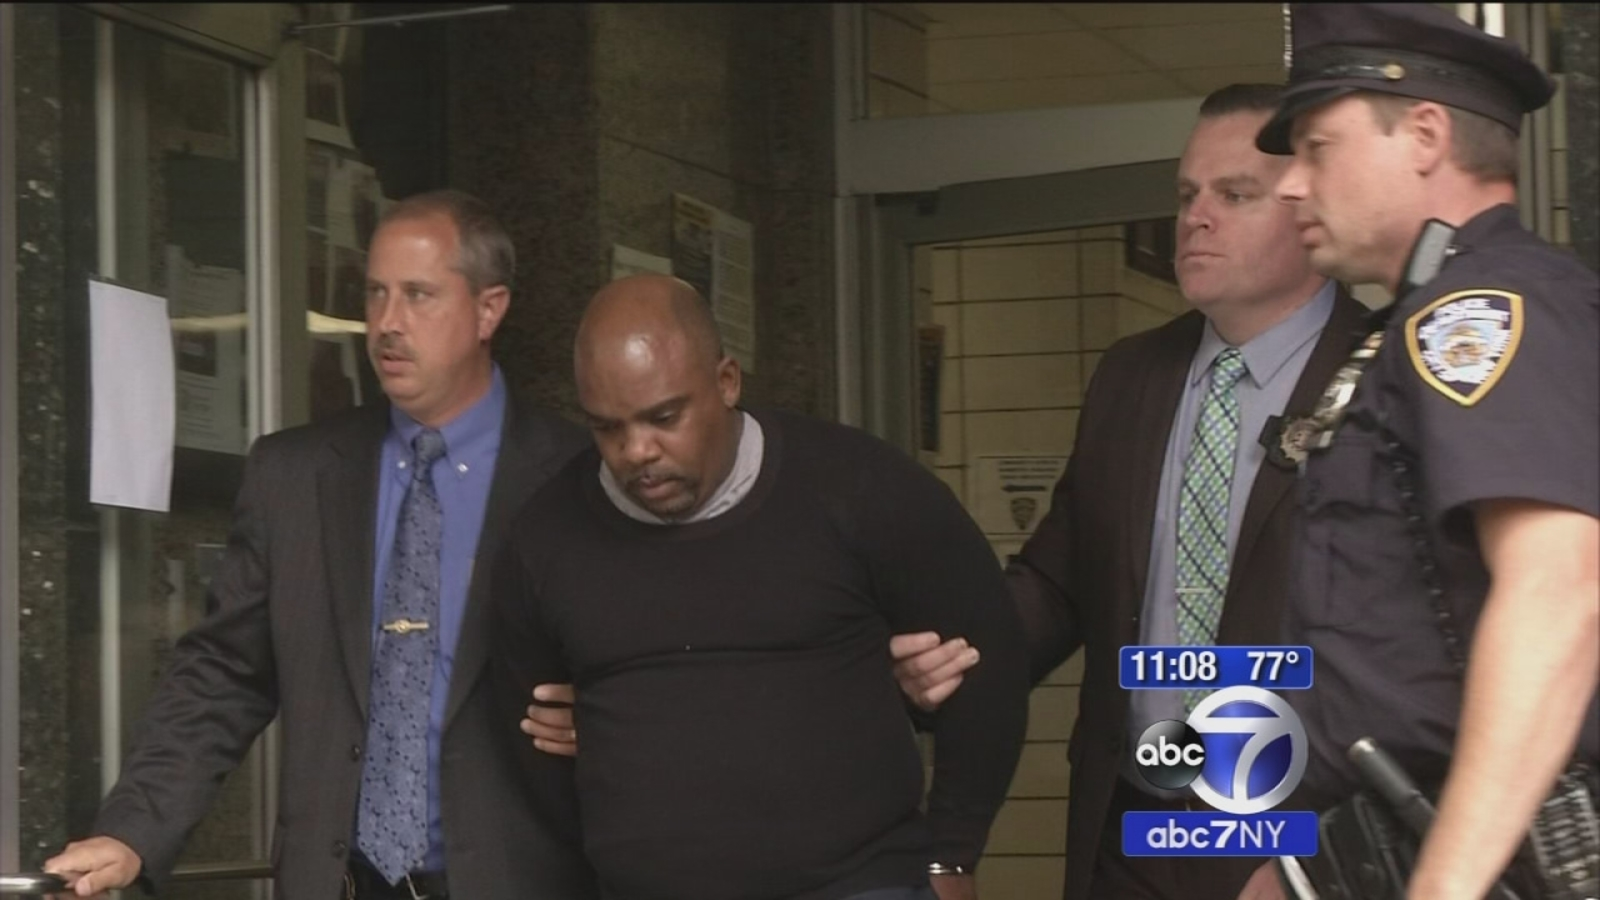 MTA train operator arrested in connection with hit-and-run